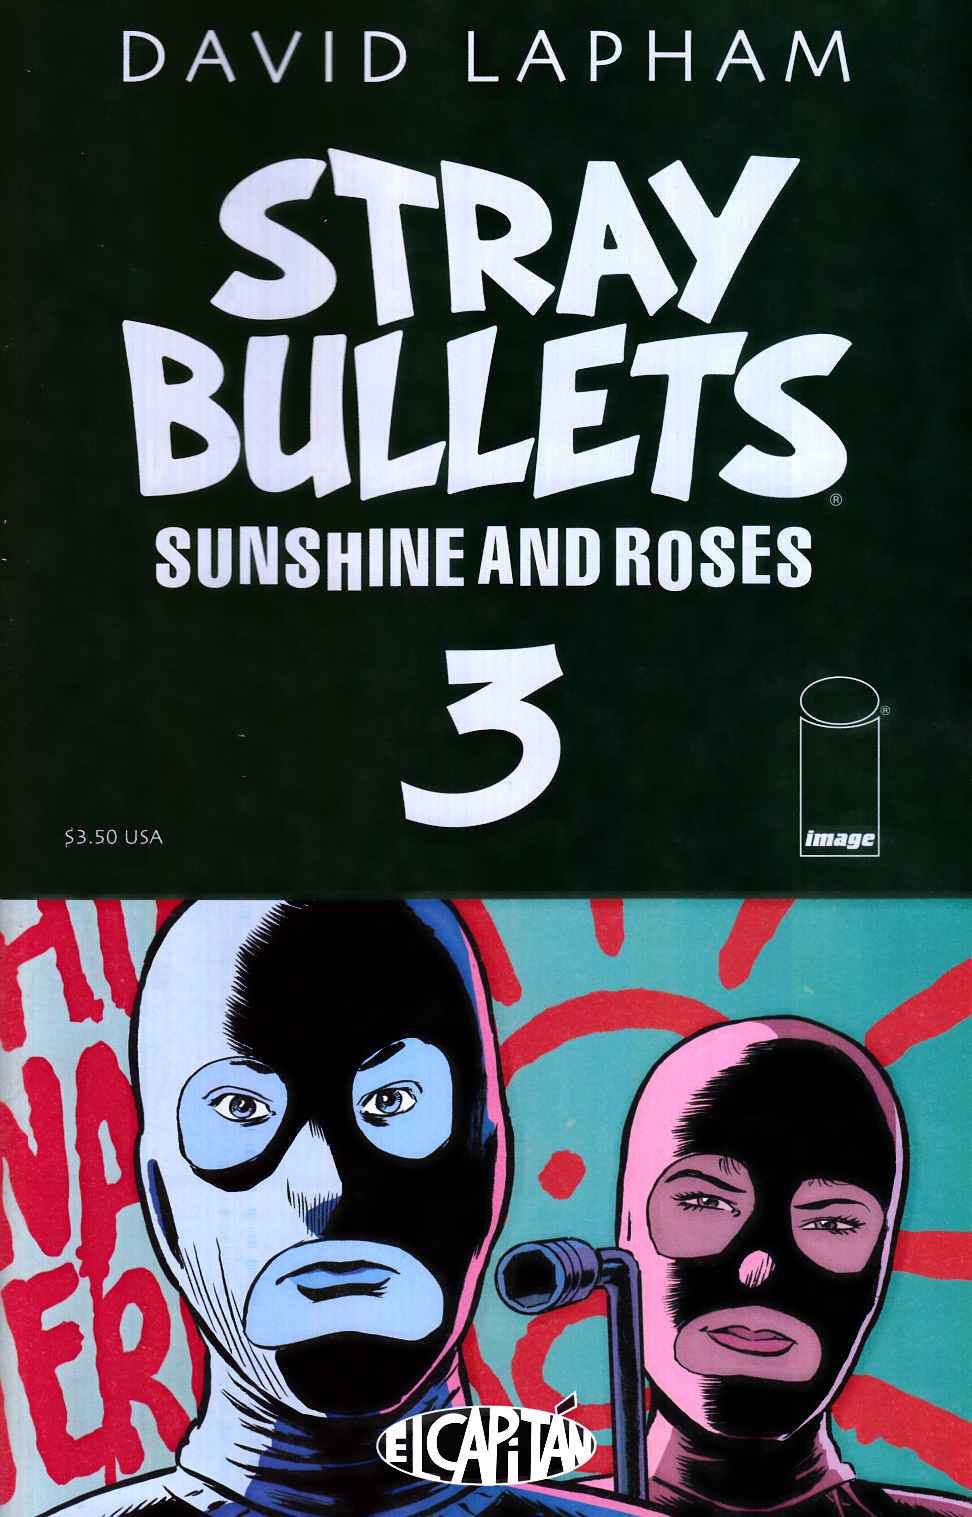 Stray Bullets Sunshine & Roses #3 [Image Comic] THUMBNAIL